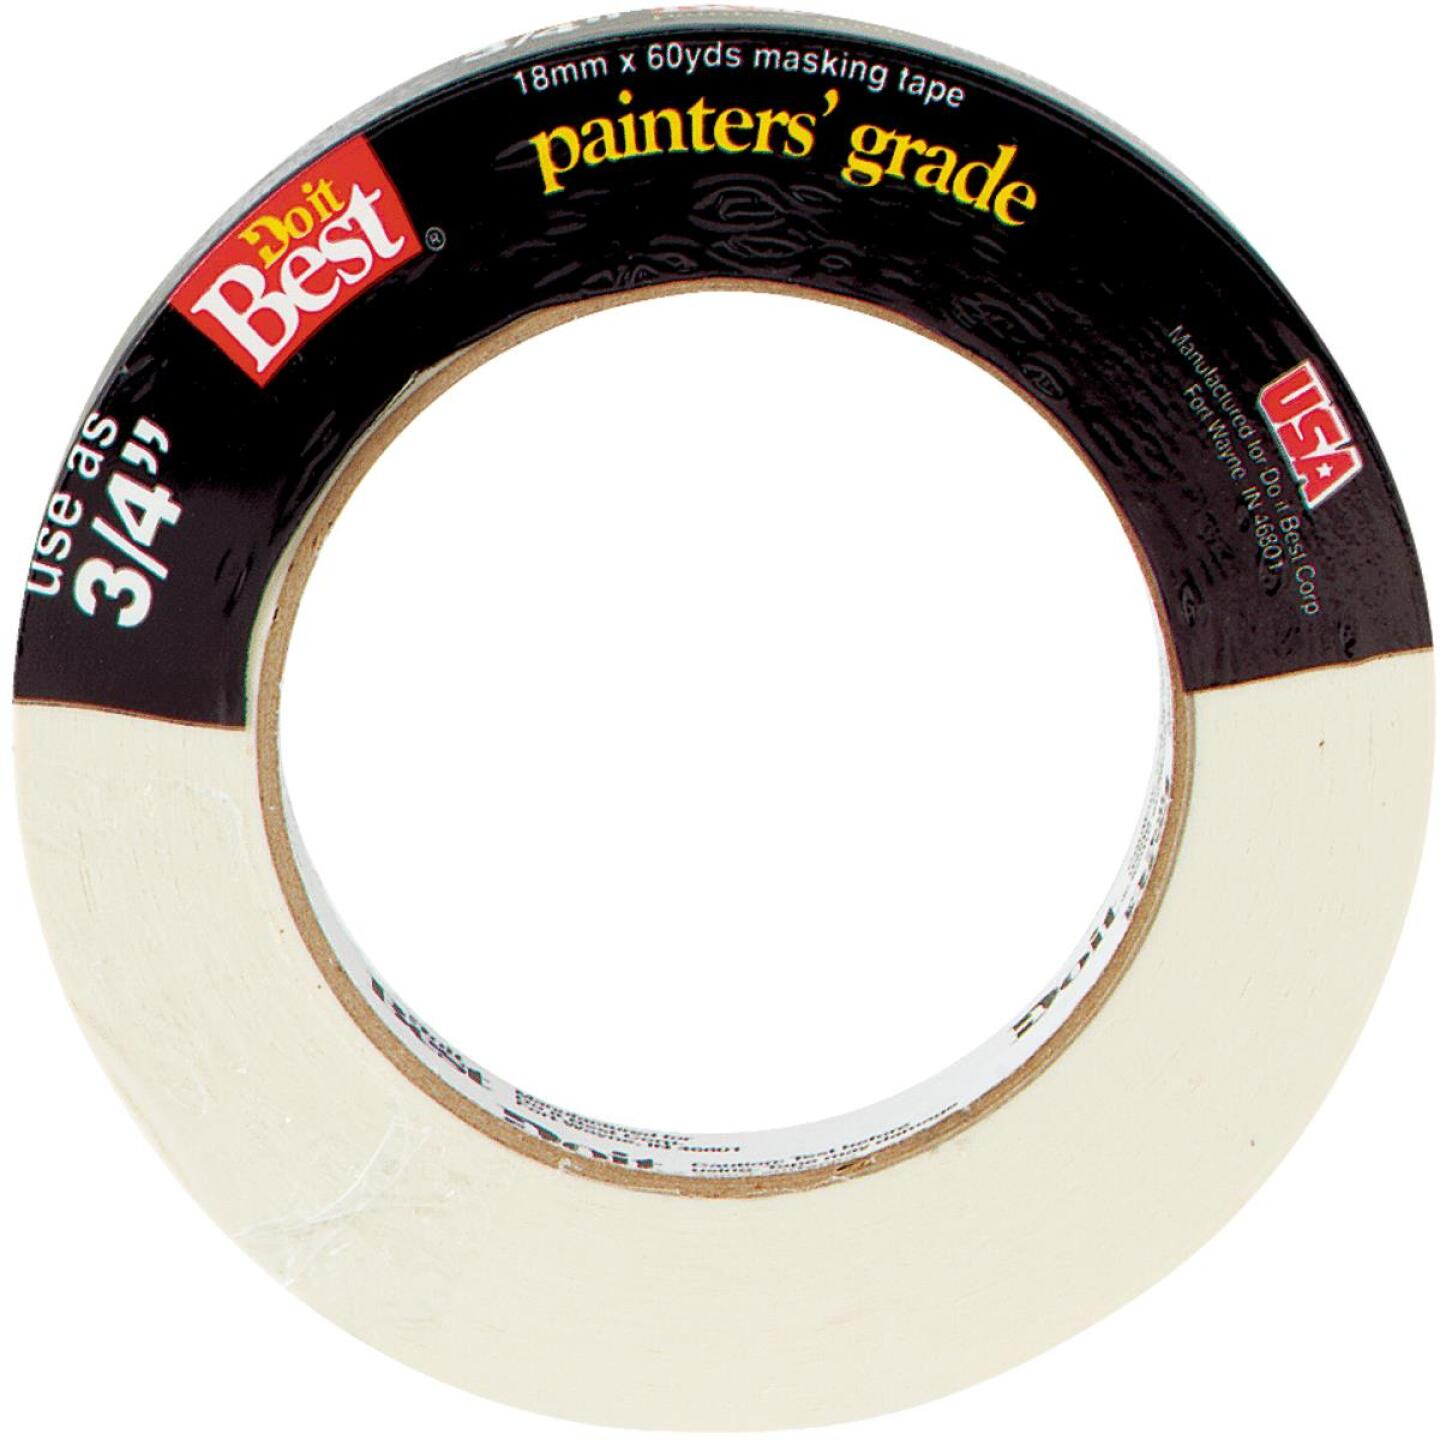 Do it Best 0.70 In. x 60 Yd. Painters Grade Masking Tape Image 2